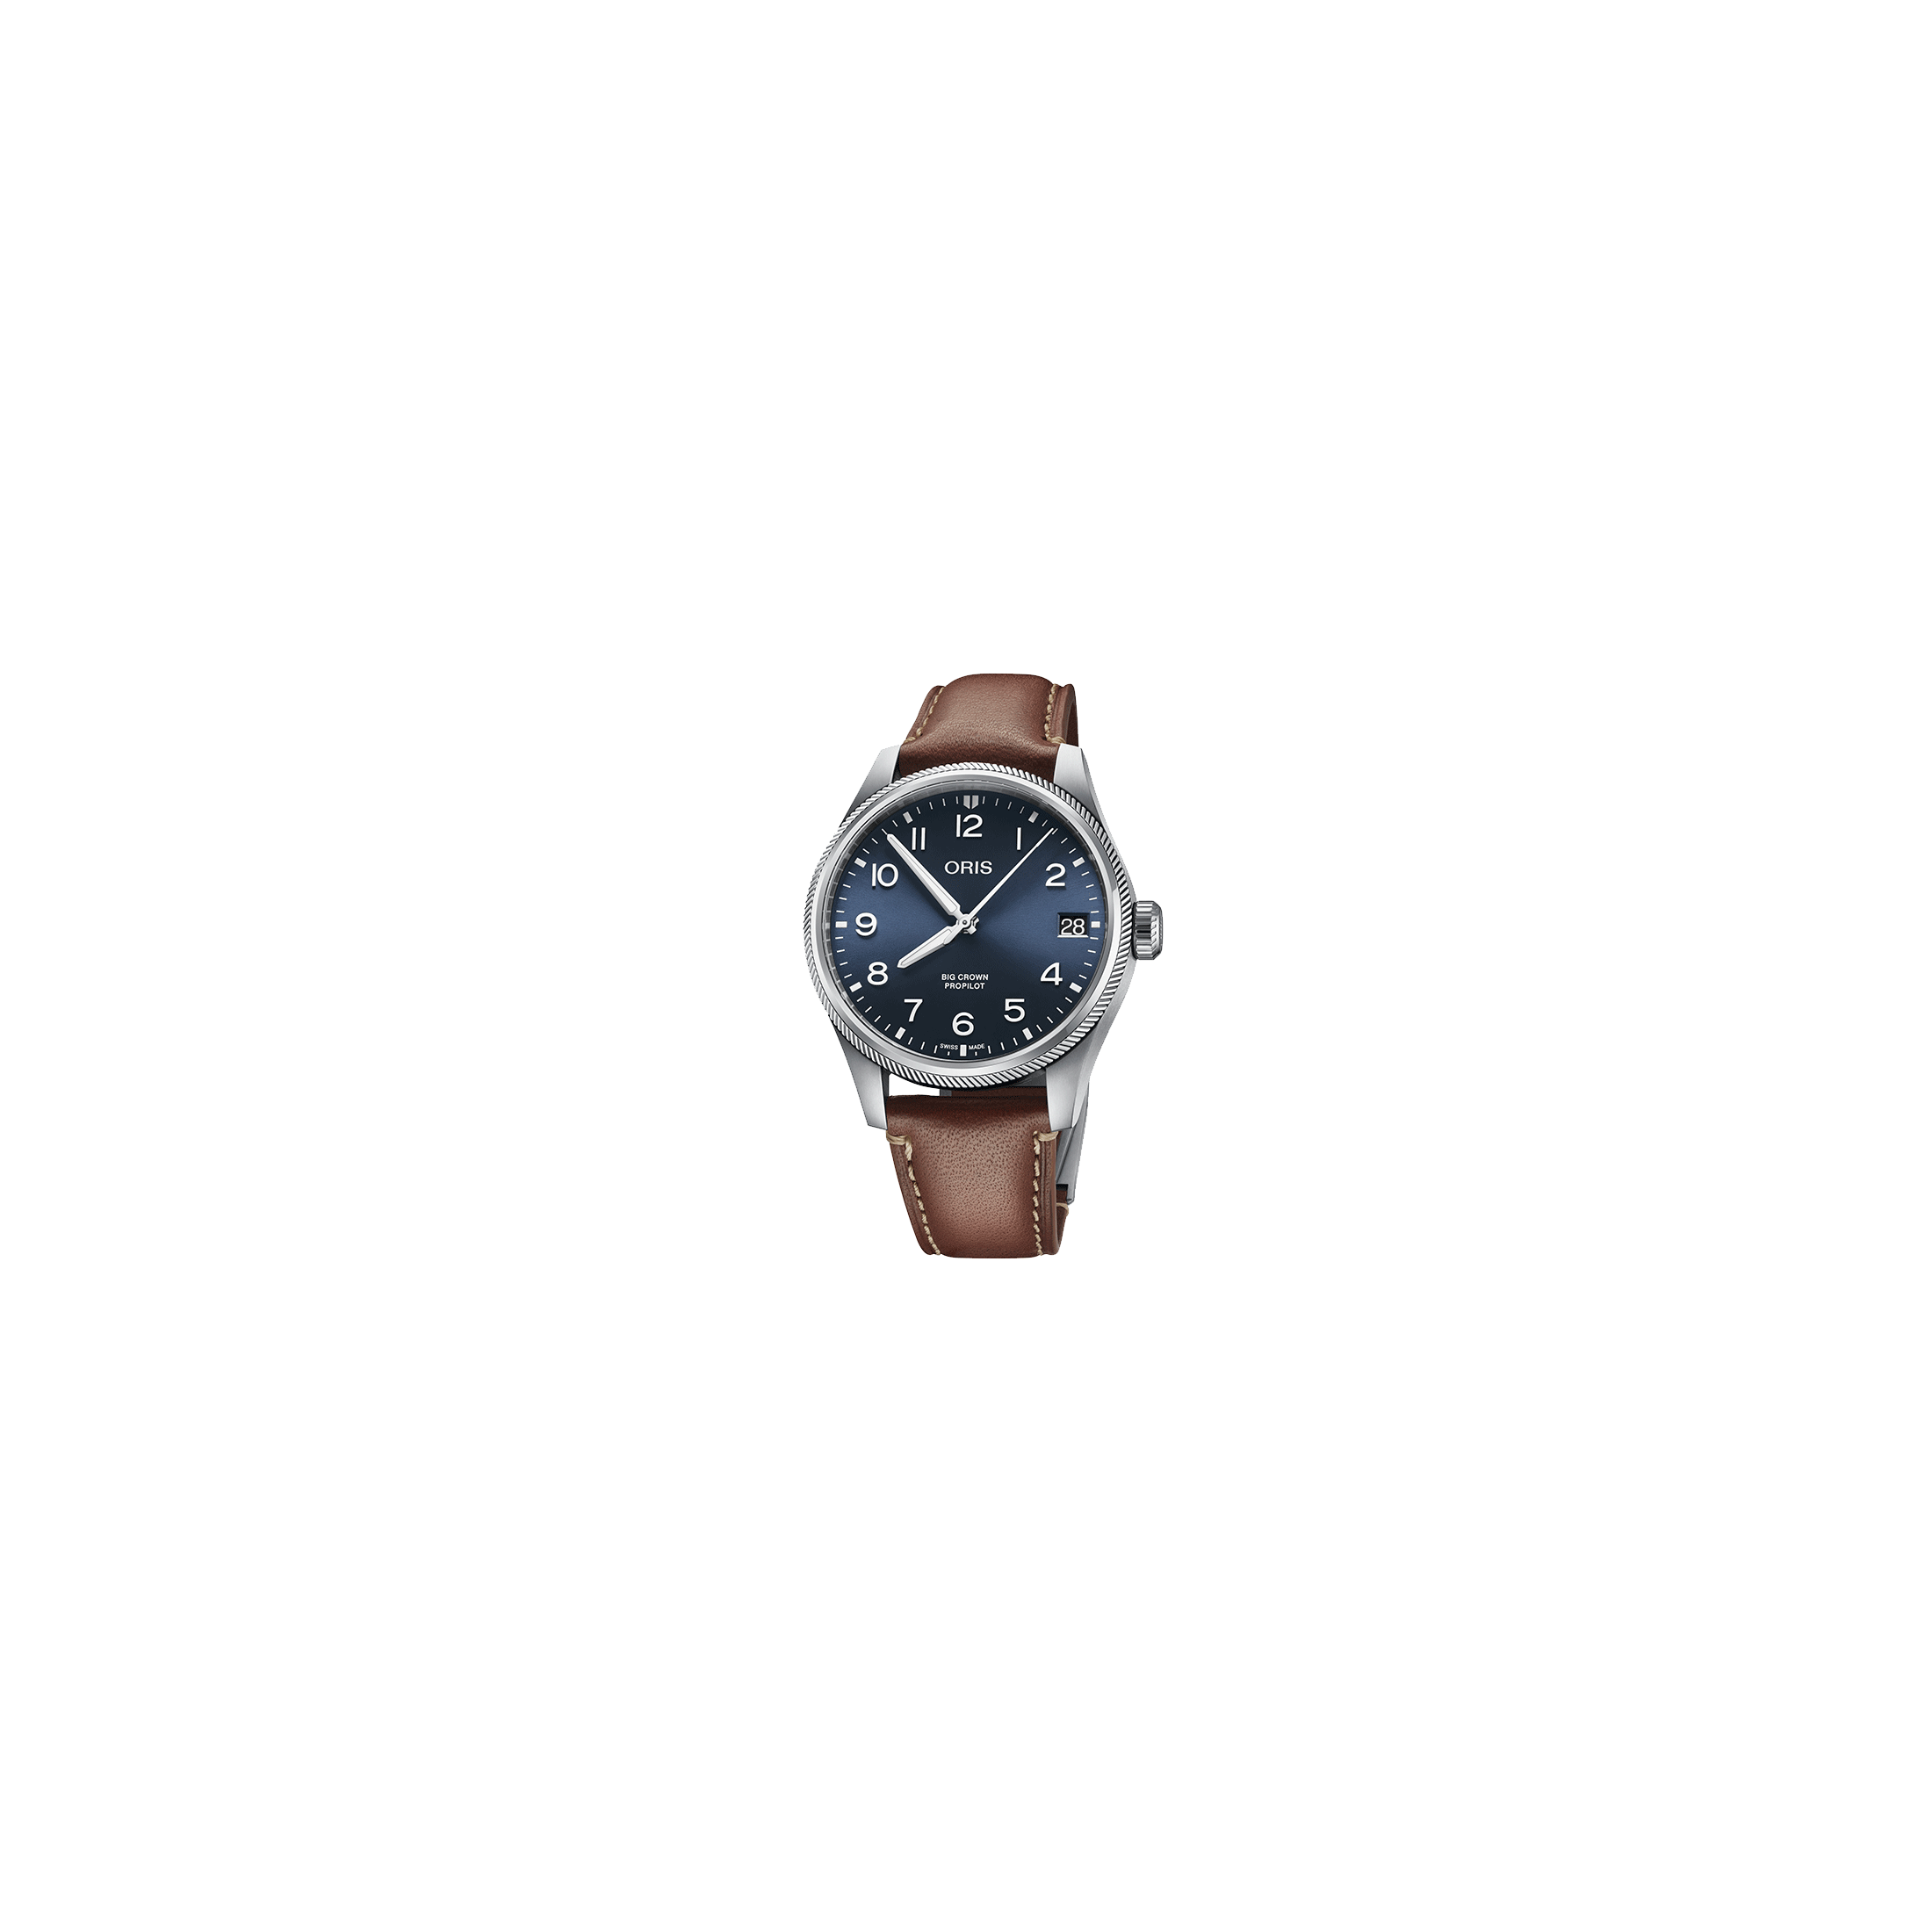 Montre Oris Aviation Big Crown Propilot Big Date automatique cadran bleu bracelet cuir 41 mm